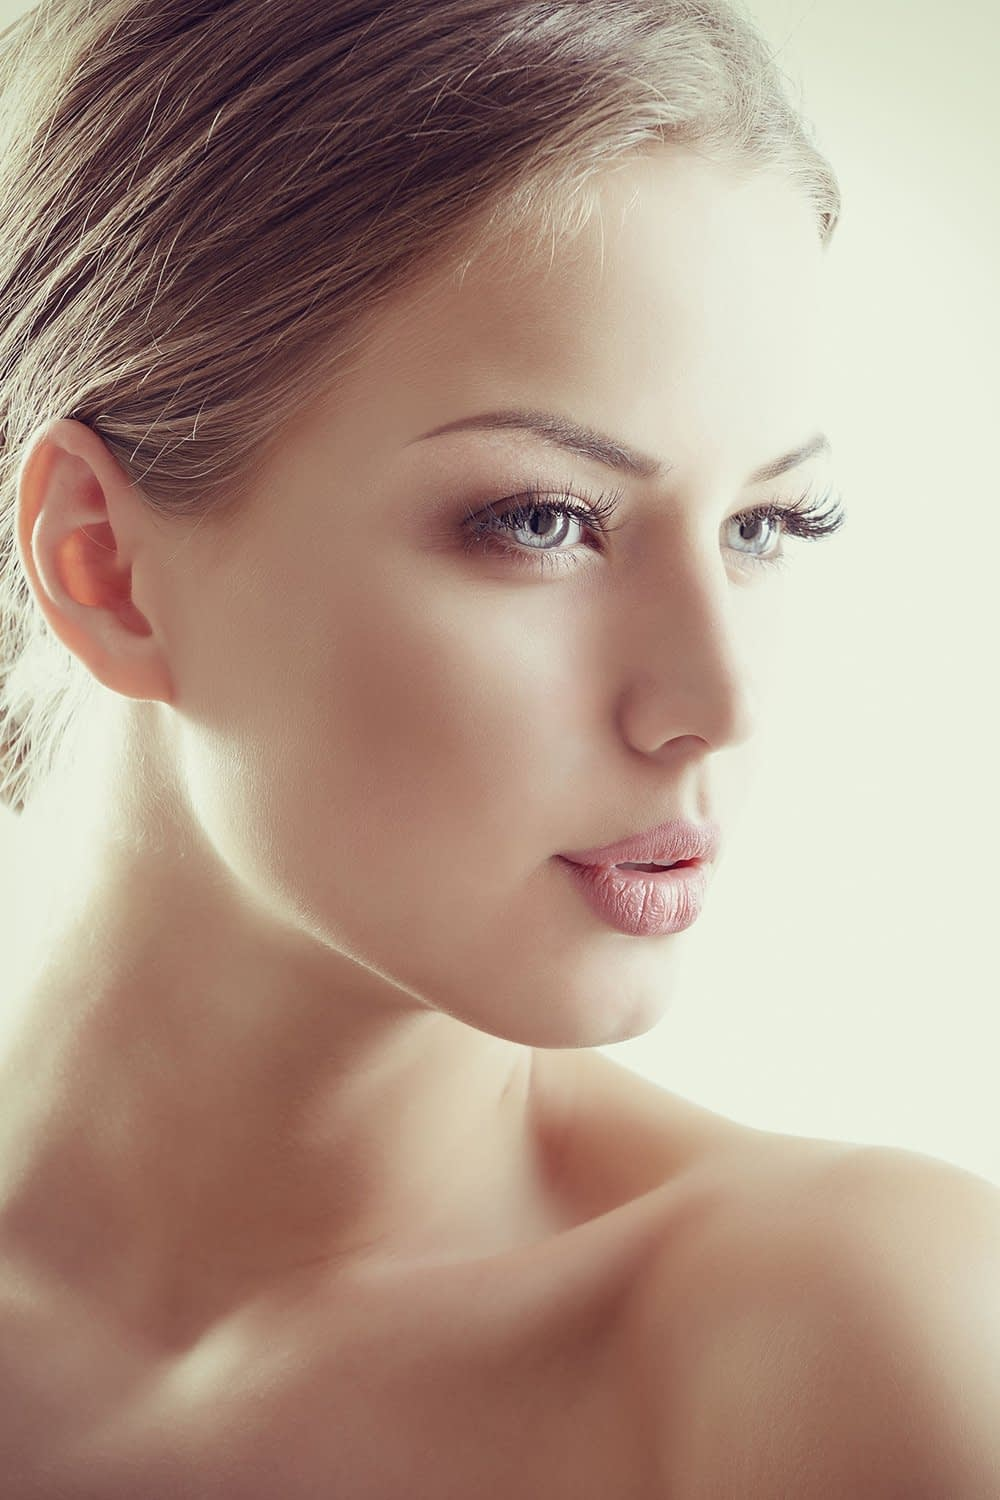 Get Clear & Brilliant Skin With Our Skin Treatment